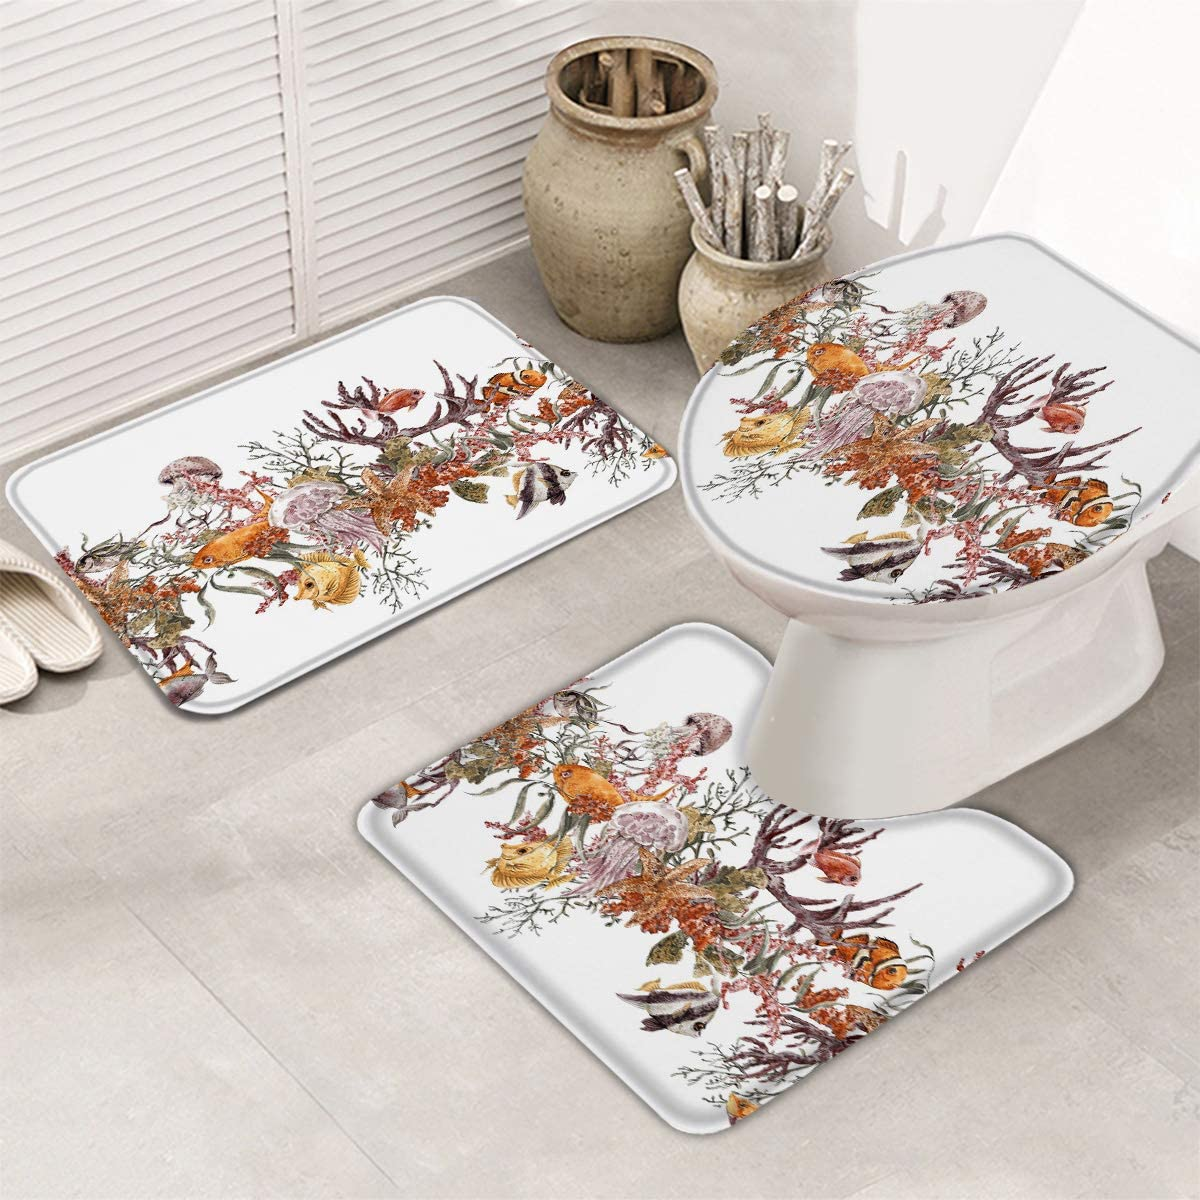 Fangship 3 Piece Bathroom Rugs Set free shipping Non Mats New products world's highest quality popular Bath for Sl